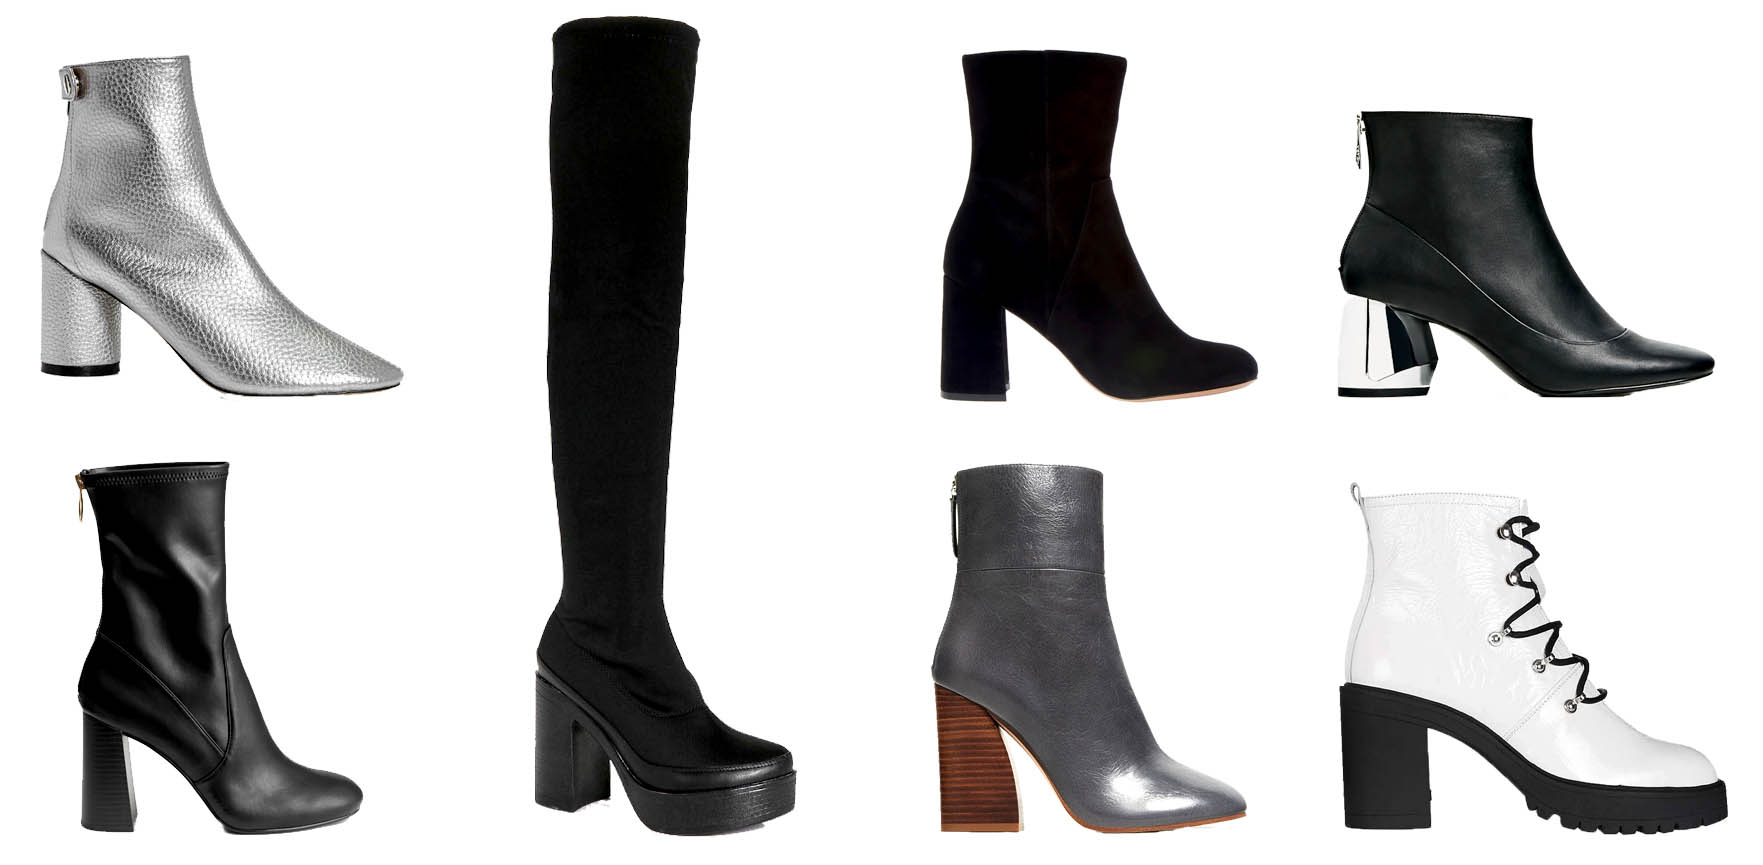 30 pairs of 2004 boot fall fashion